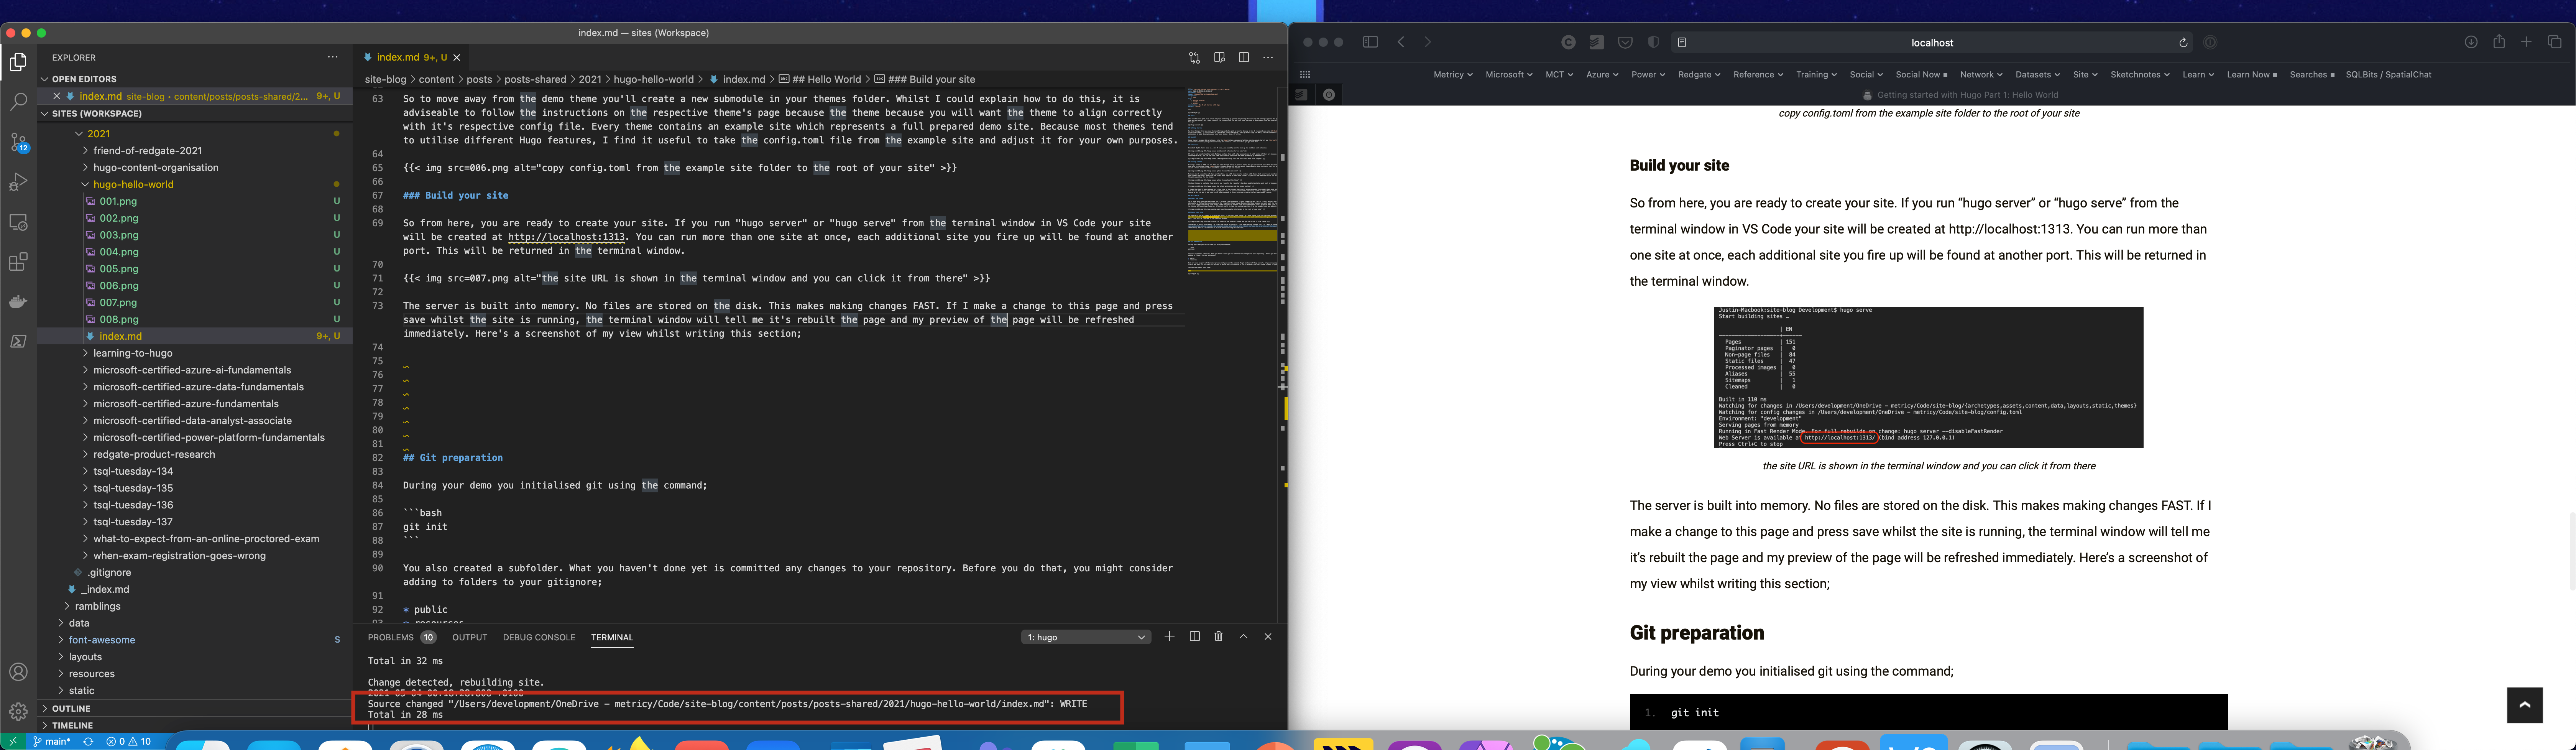 the image shows the raw text and the built website side by side